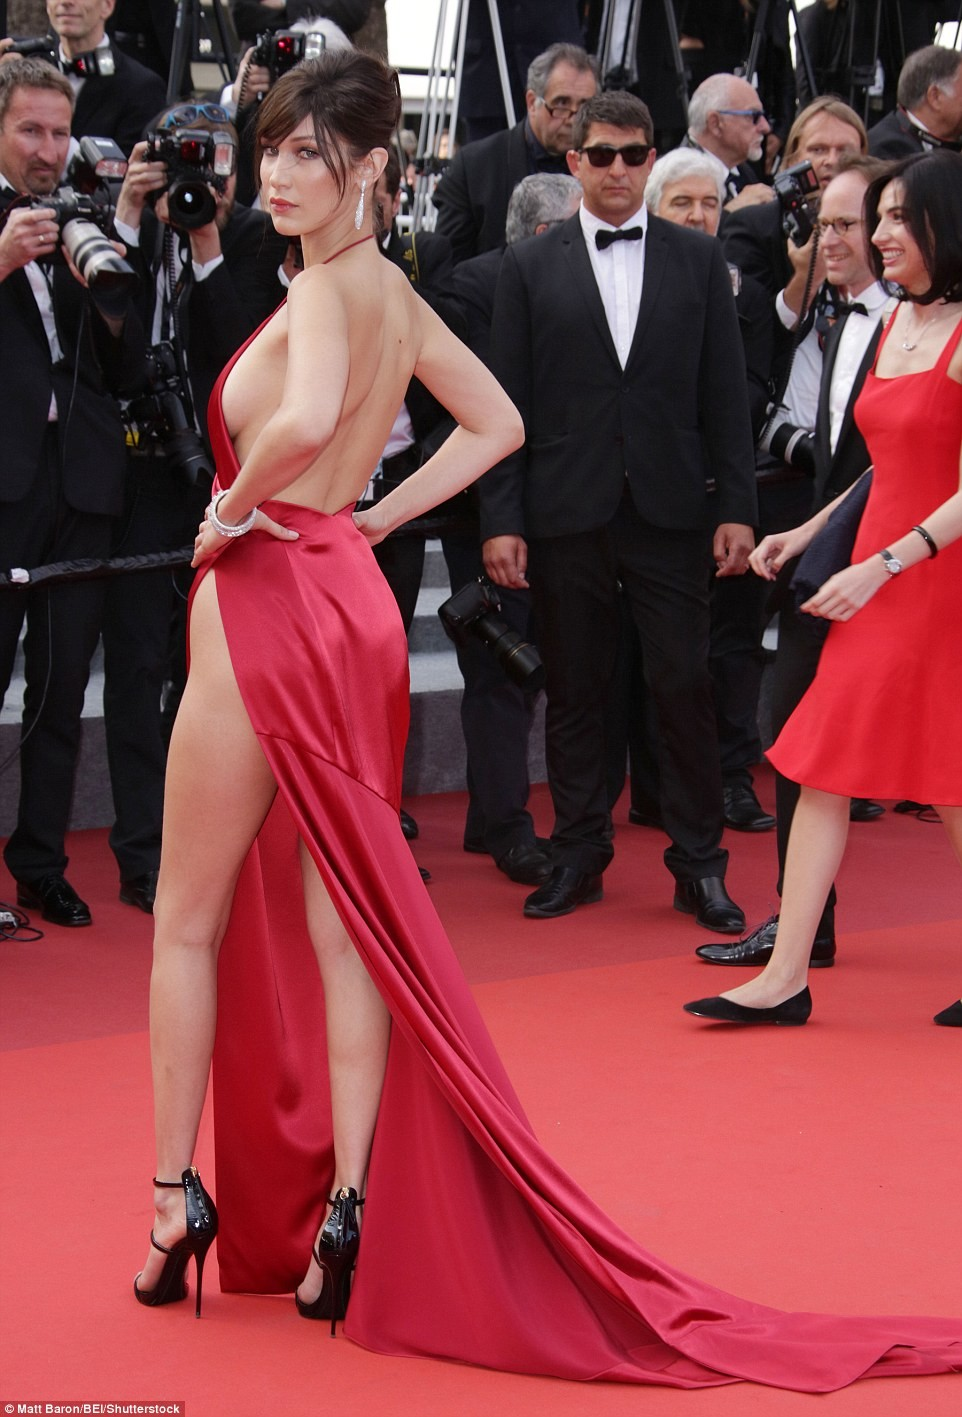 bella hadid red dress cannes 2016 (6)